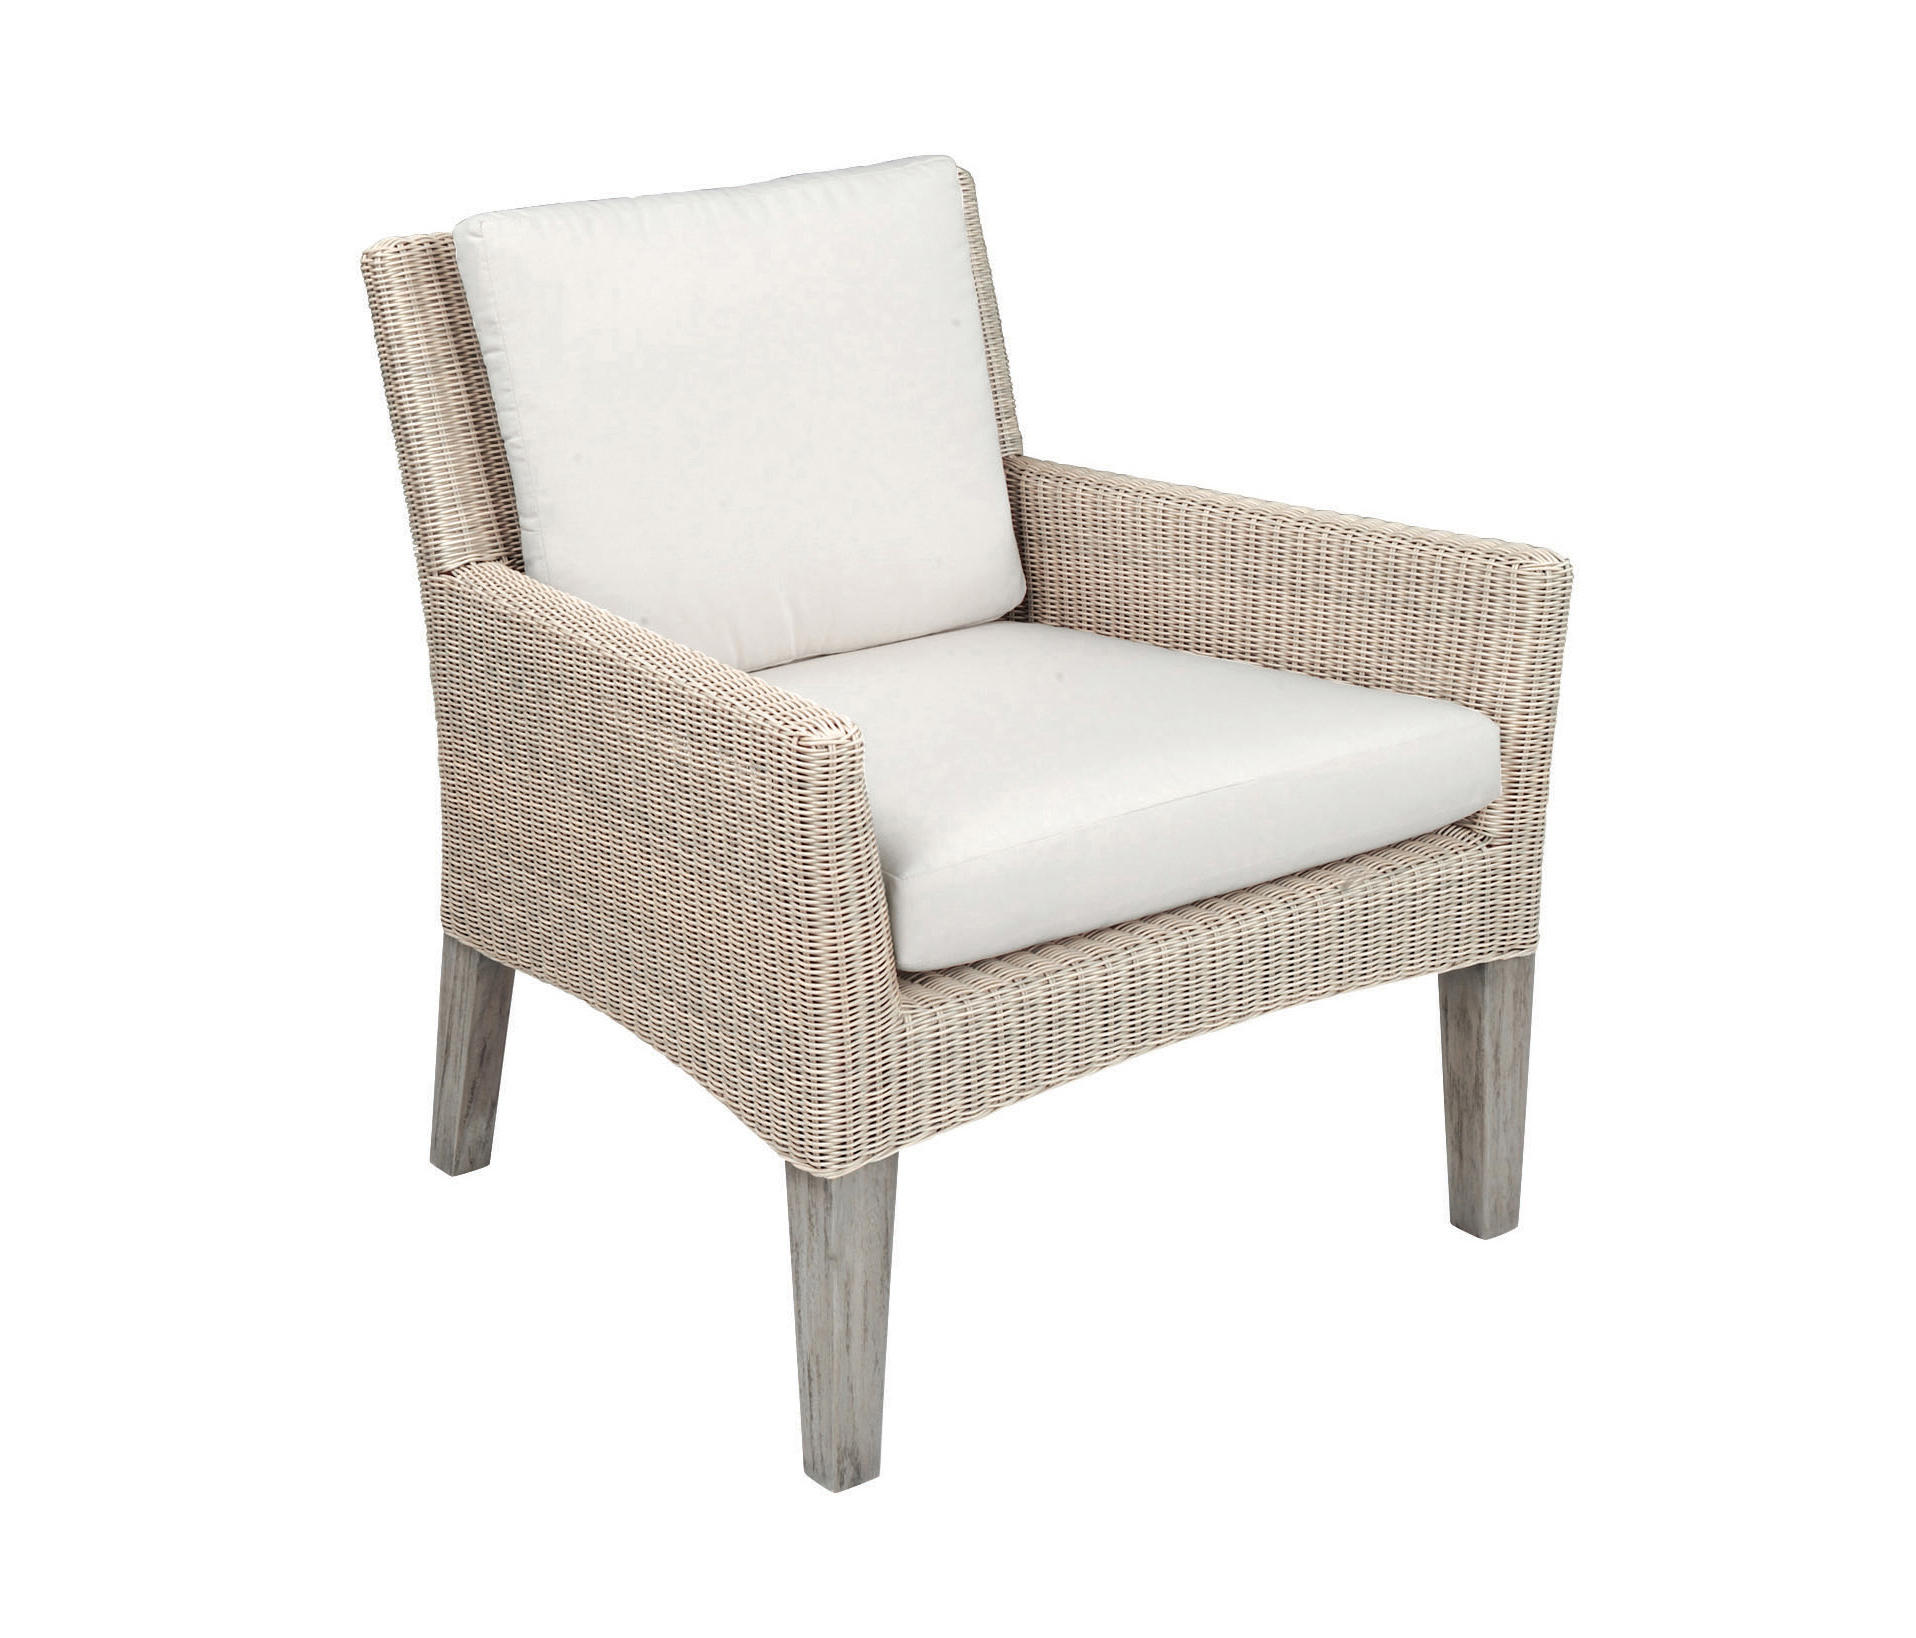 Paris Club Chair By Kingsley Bate | Garden Chairs